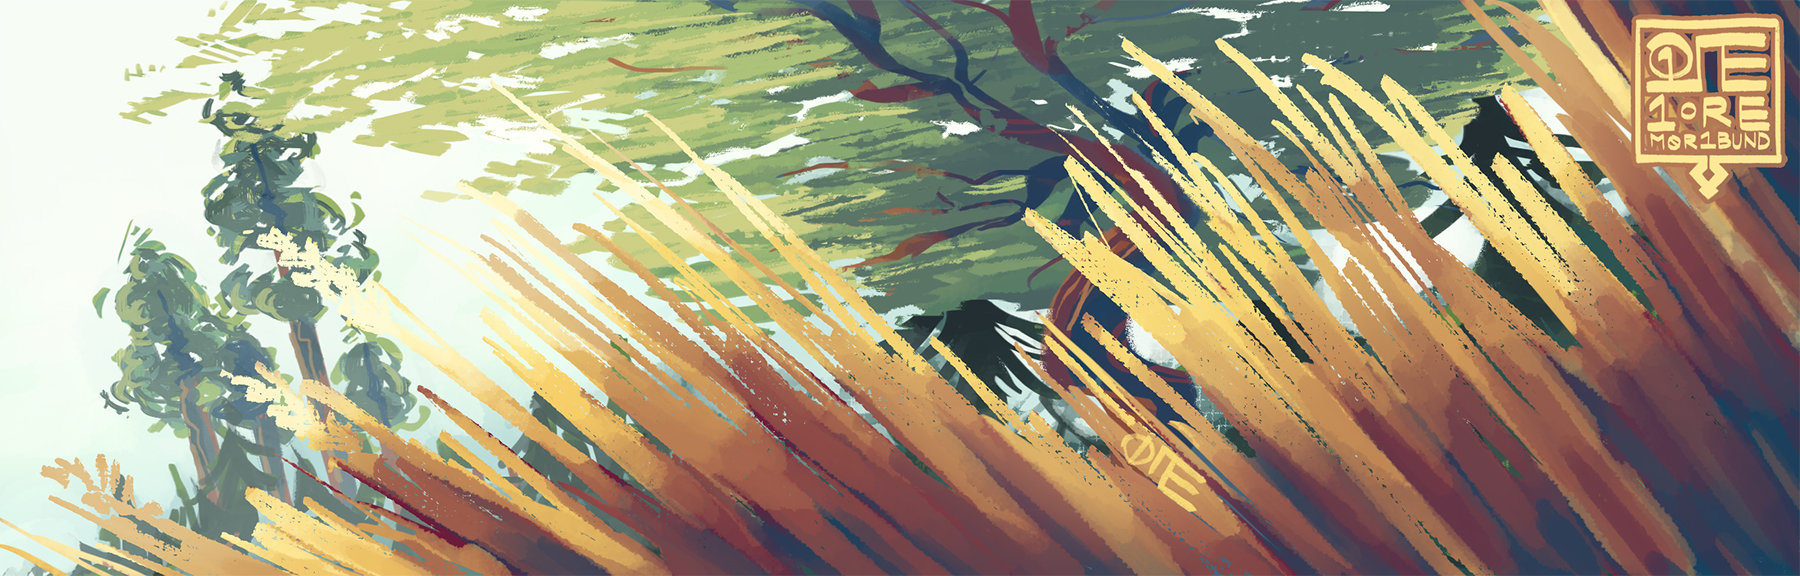 Sequoias and Reeds